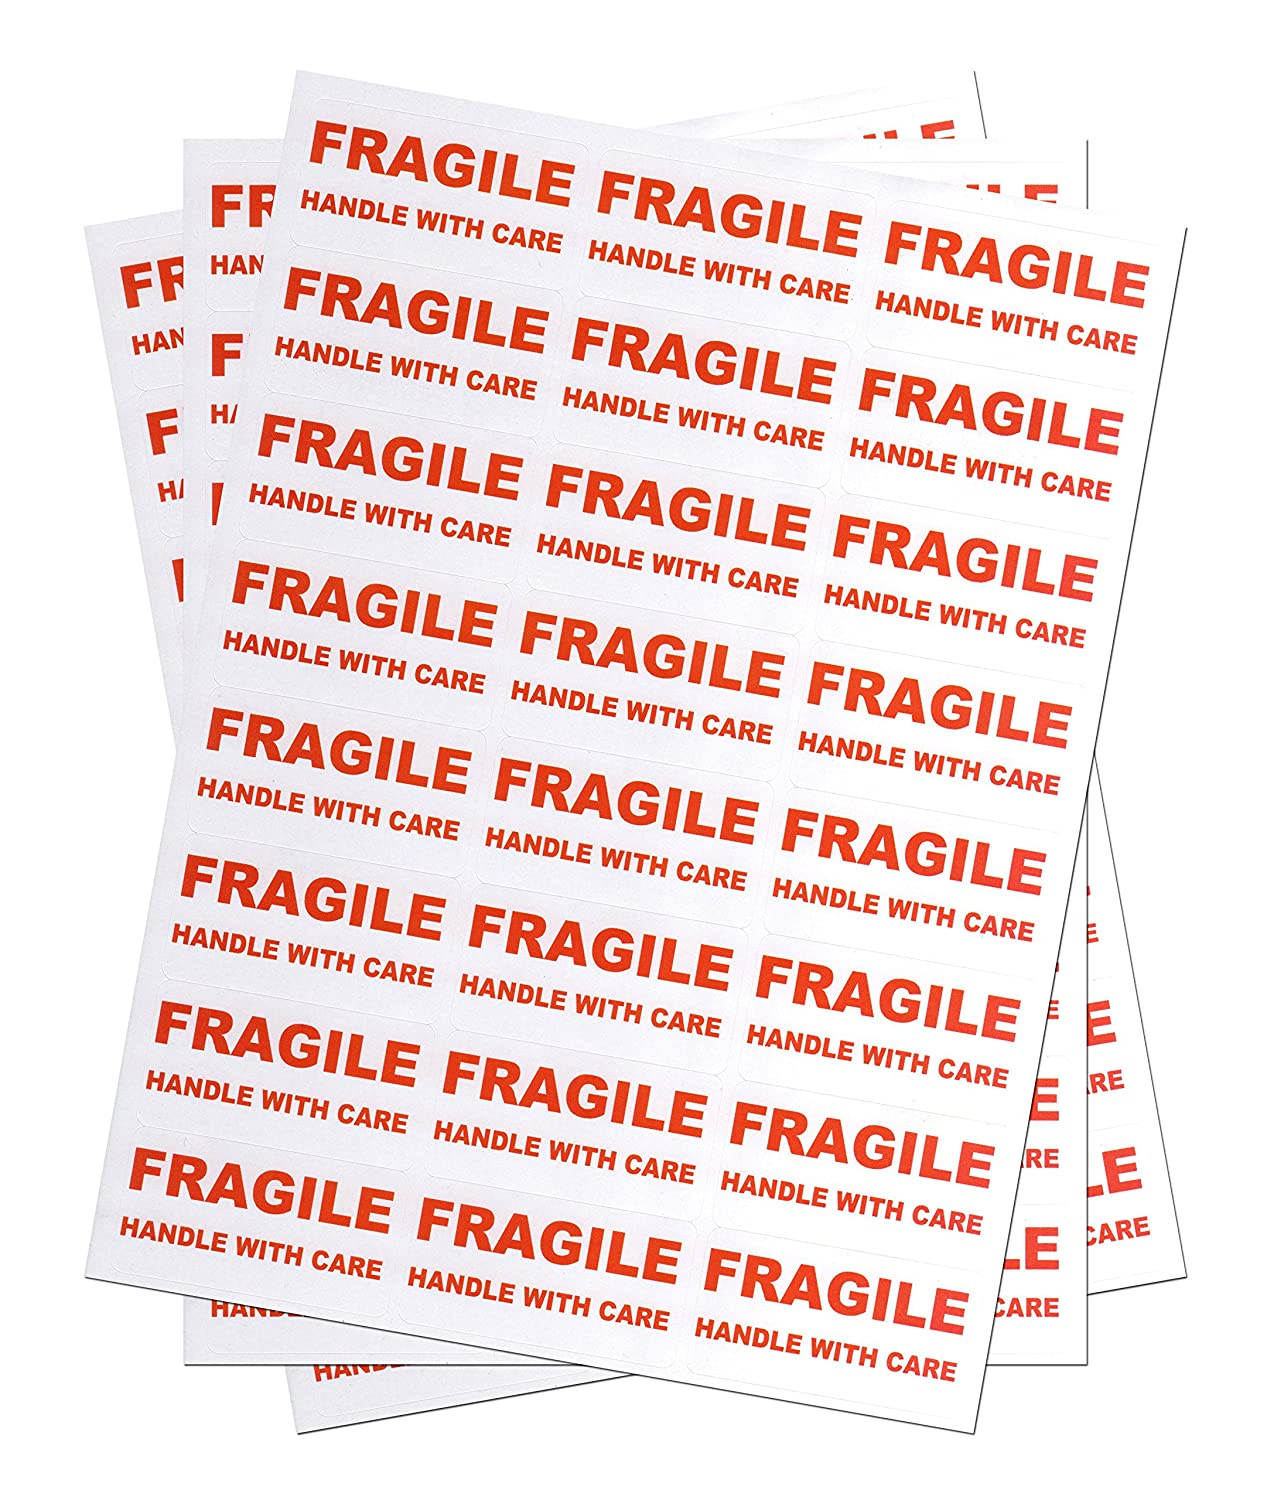 1200 FRAGILE - Handle with care Labels Medium Stickers Mediasave